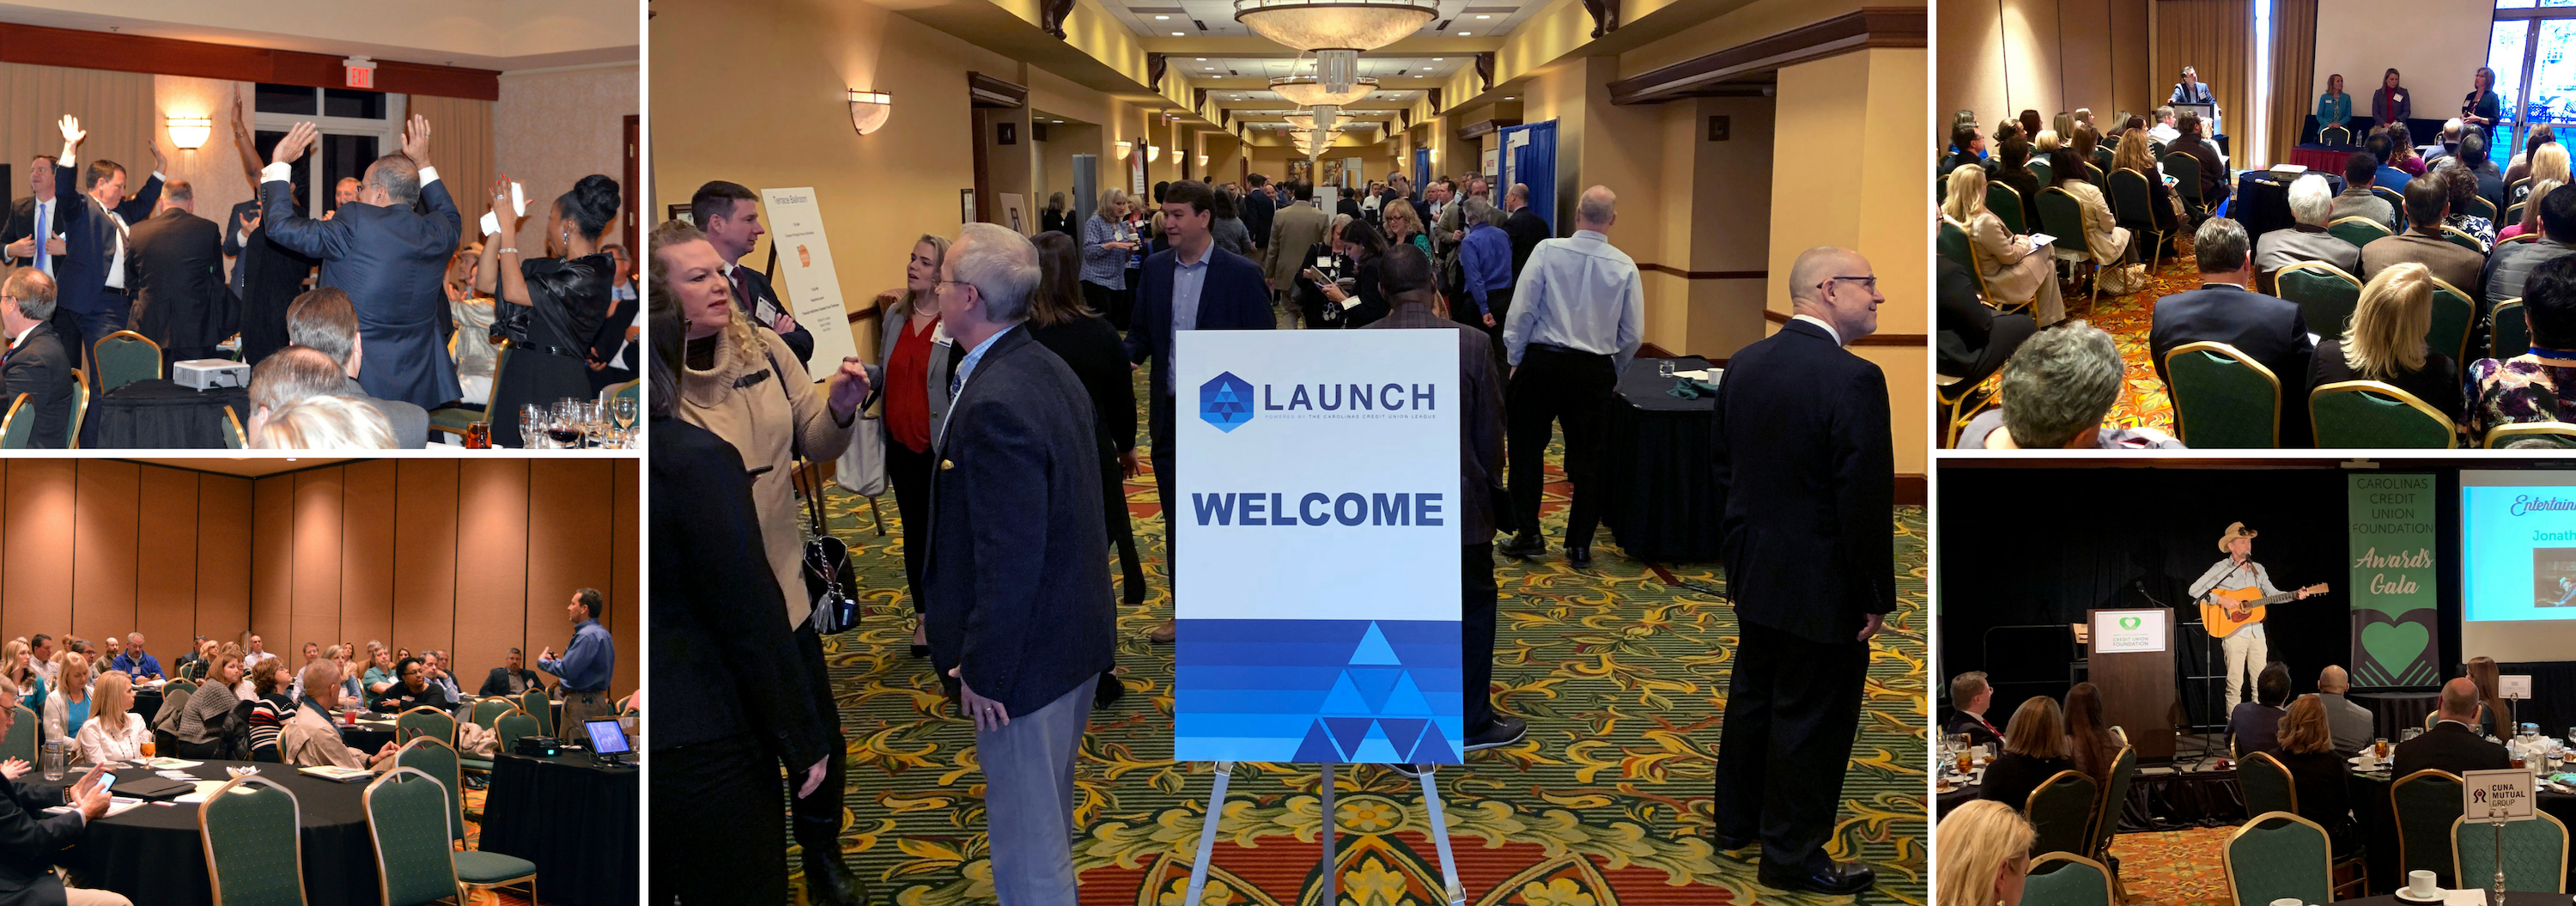 collage of 2019 LAUNCH Conference